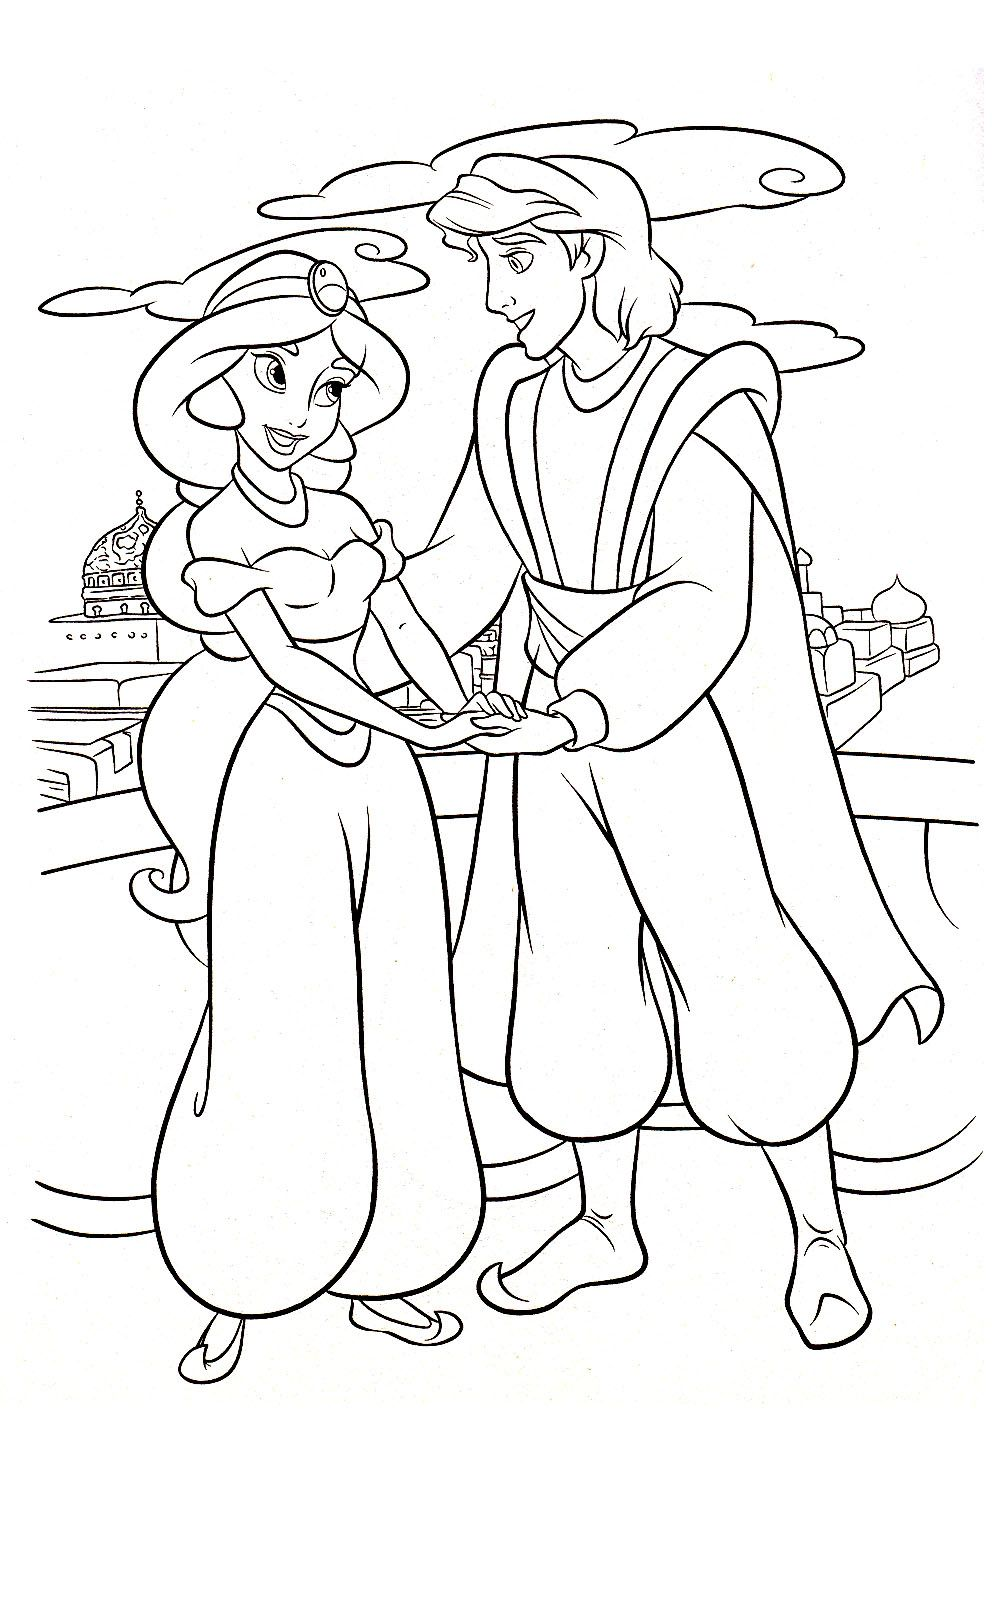 Aladdin Coloring Pages Printablejpg 1600 coloring